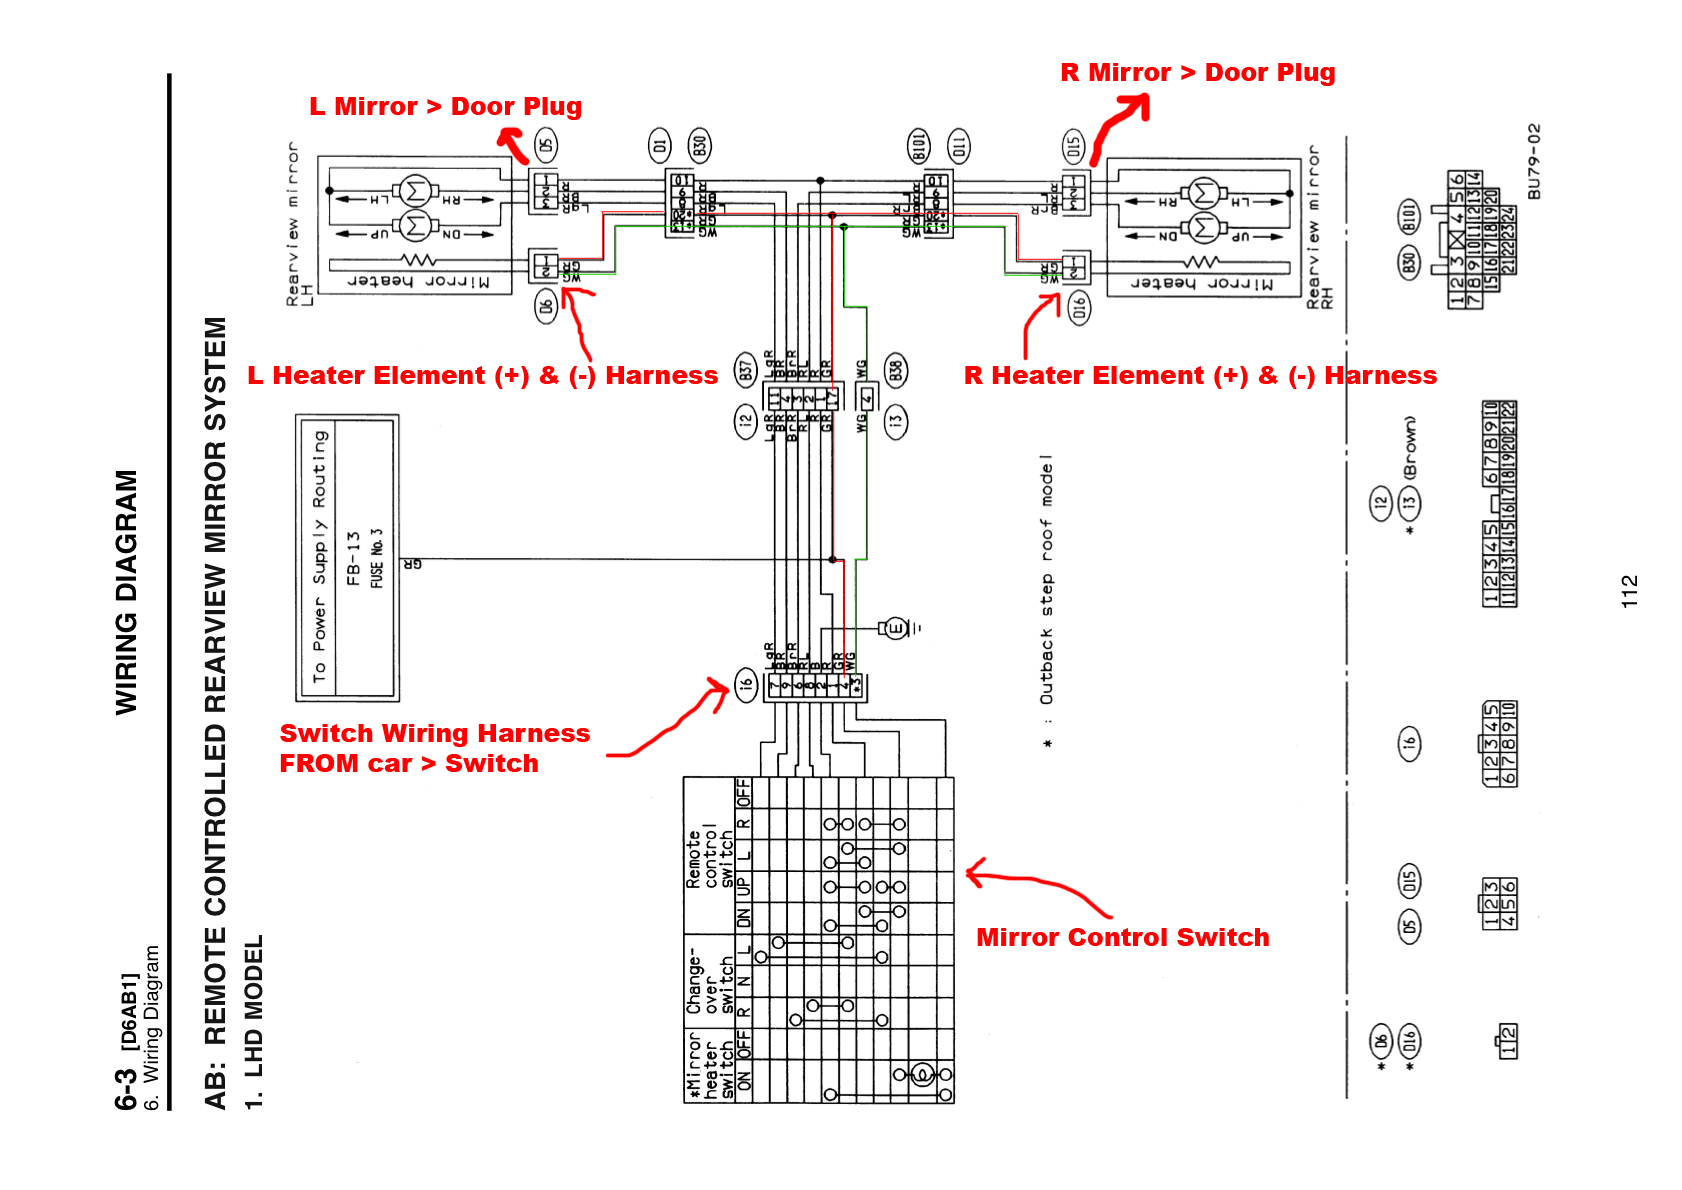 DIAGRAM] 1996 Subaru Legacy Wiring Diagram FULL Version HD Quality Wiring  Diagram - FIRSTSTEPDFW.JEPIX.FRfirststepdfw.jepix.fr